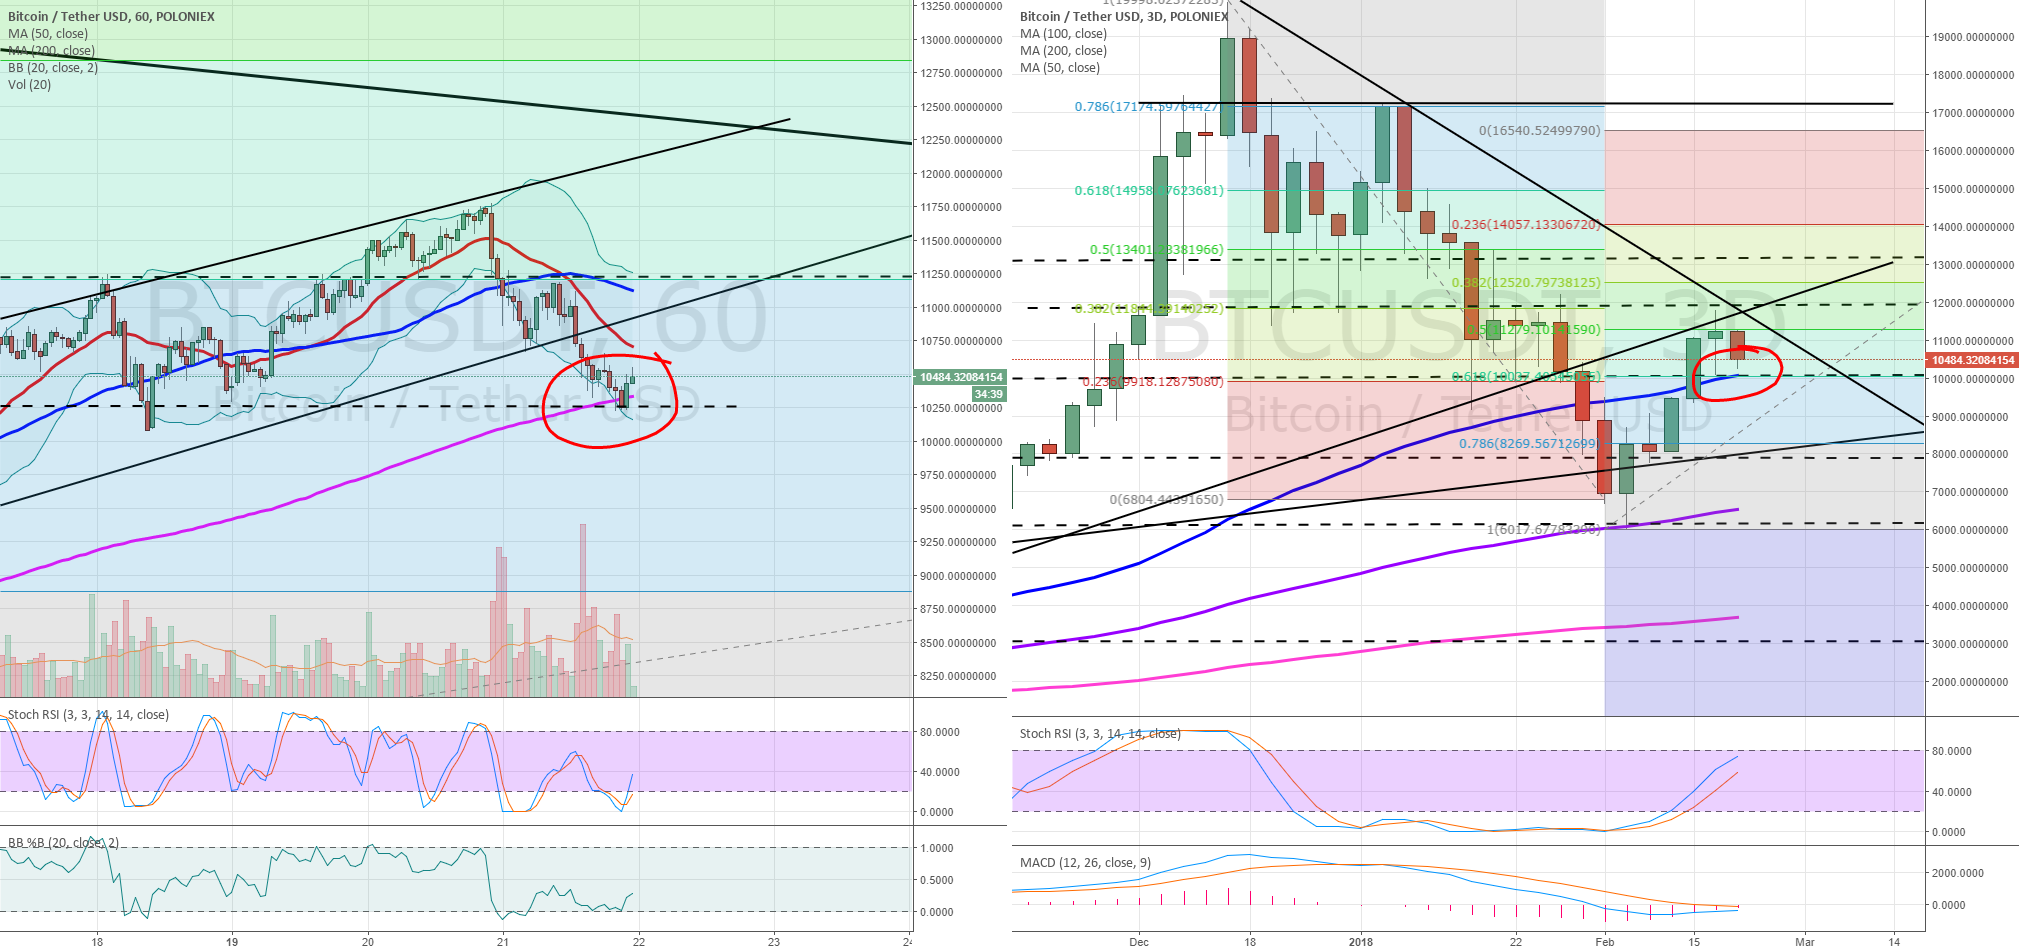 BTCUSD further evidence of a reversal possibility